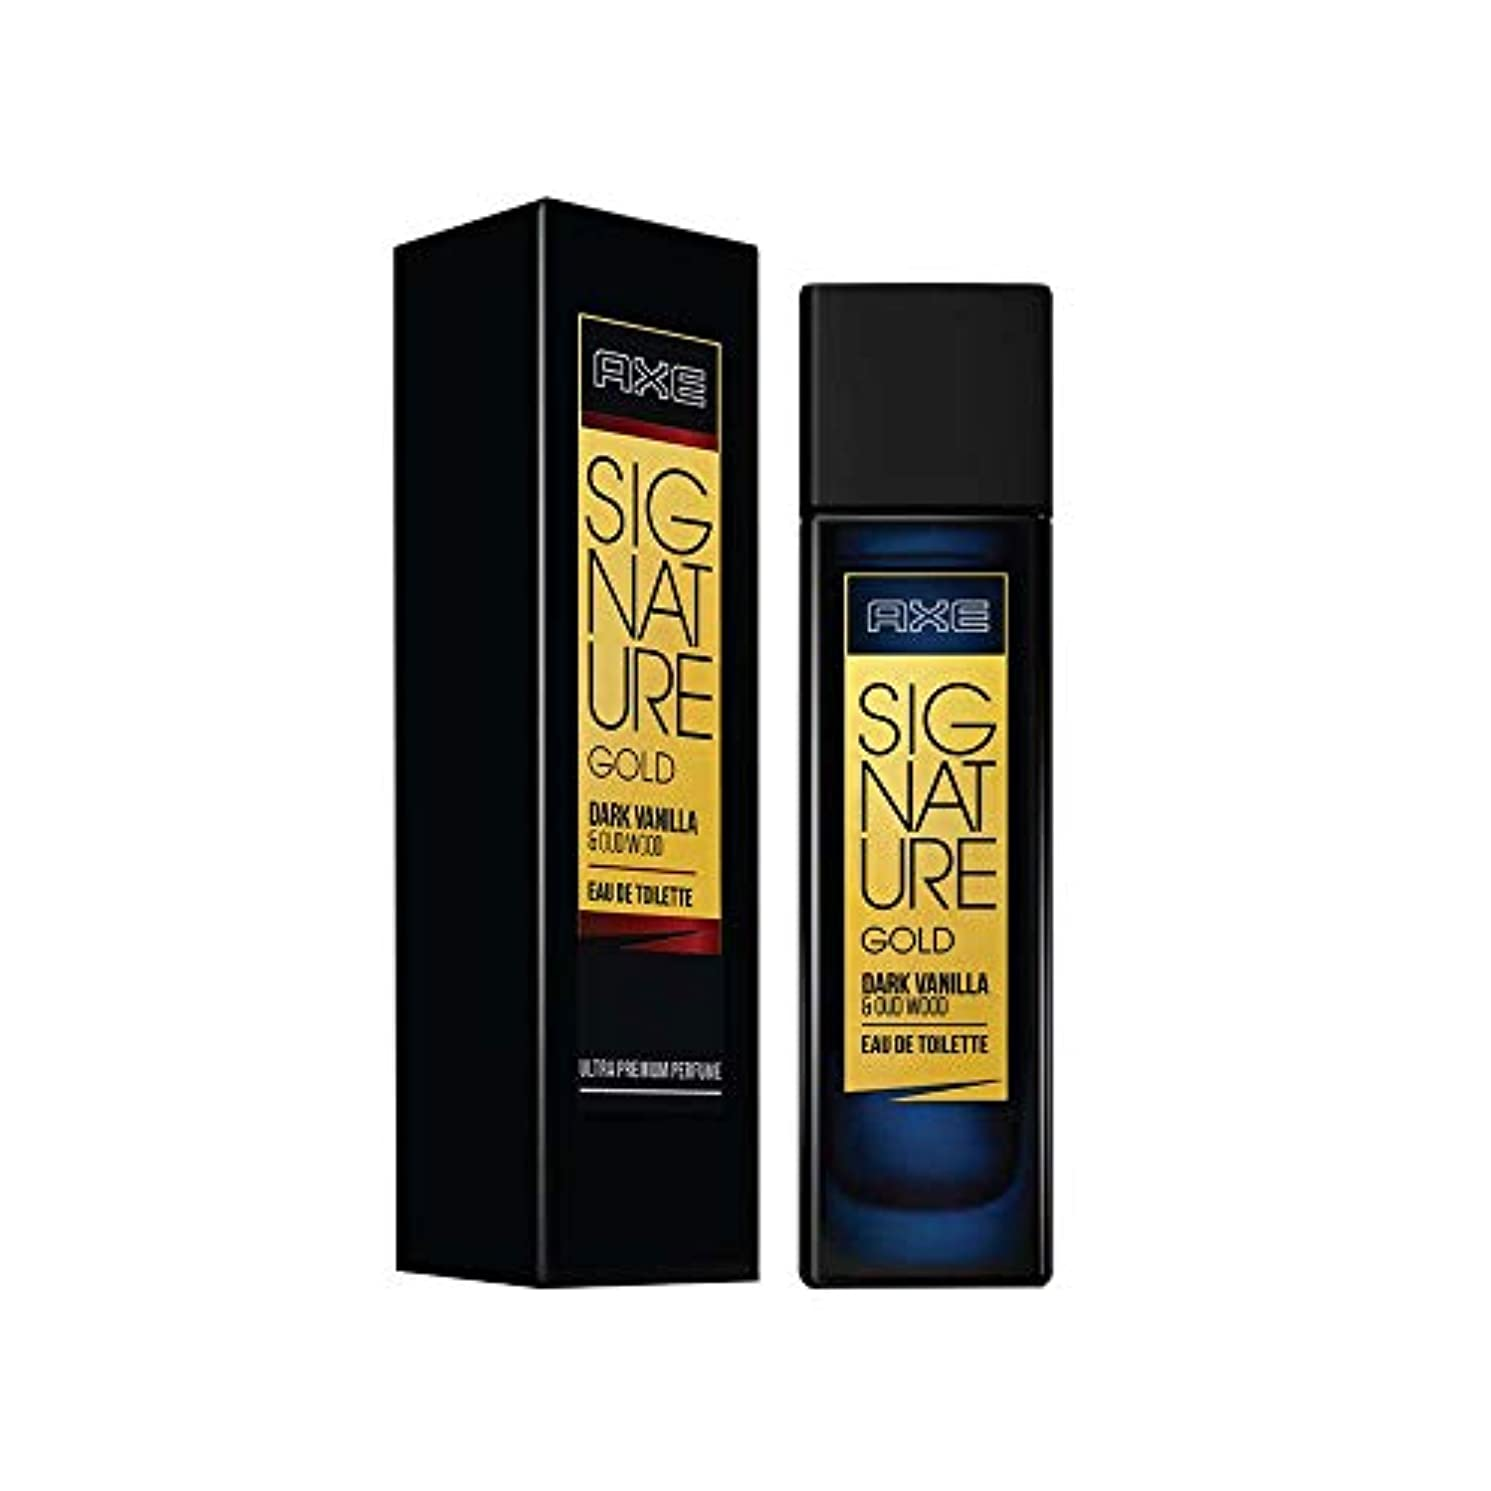 苦しみアーカイブ荒廃するAXE Signature Gold Dark Vanilla and Oud Wood Perfume, 80ml